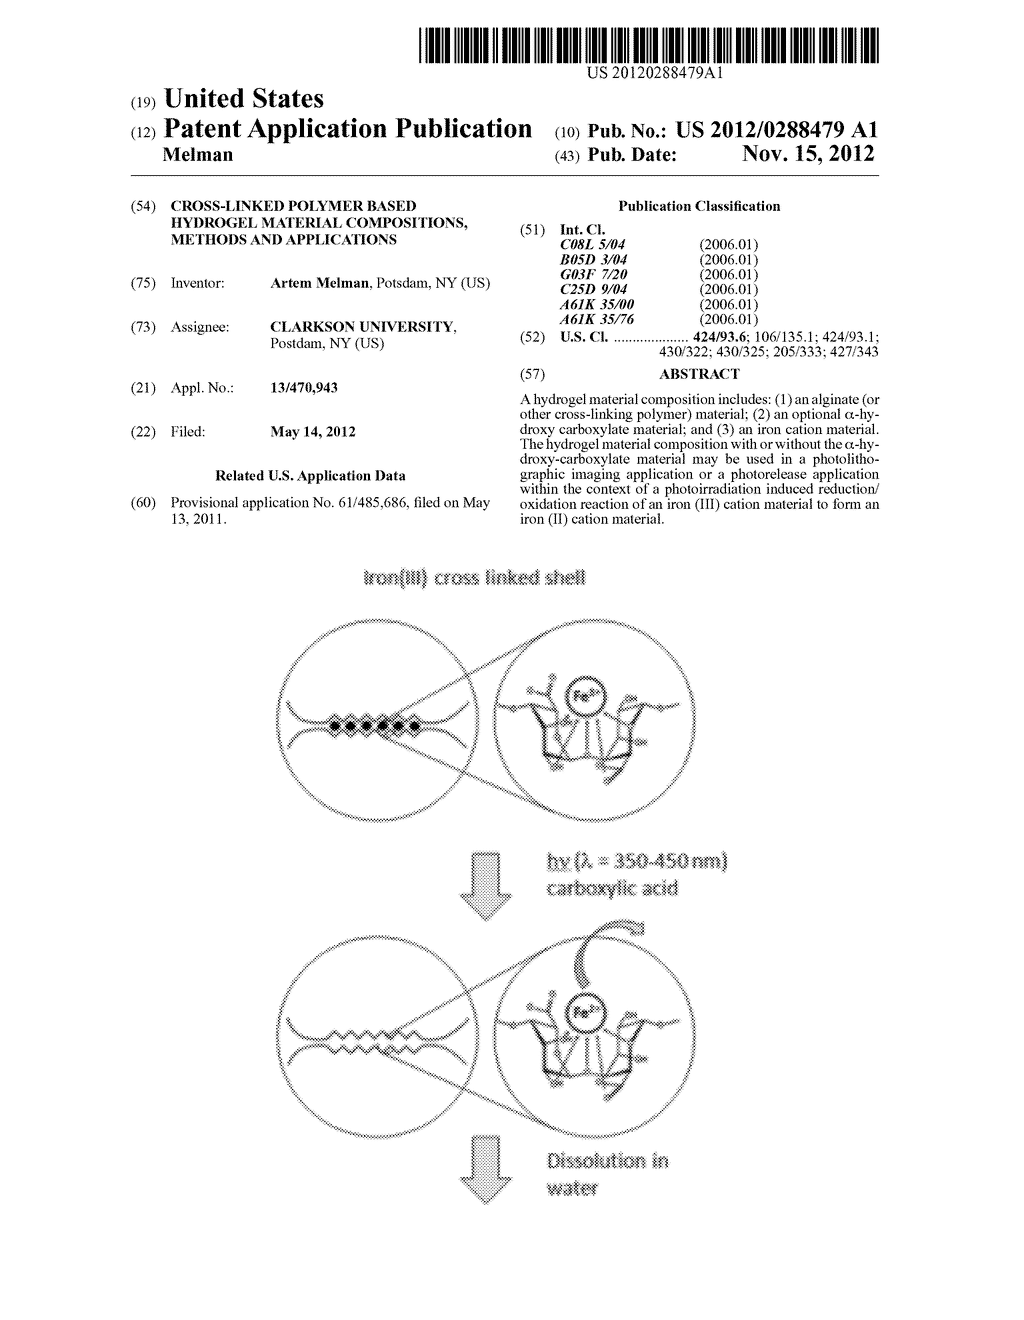 Cross-Linked Polymer Based Hydrogel Material Compositions, Methods and     Applications - diagram, schematic, and image 01